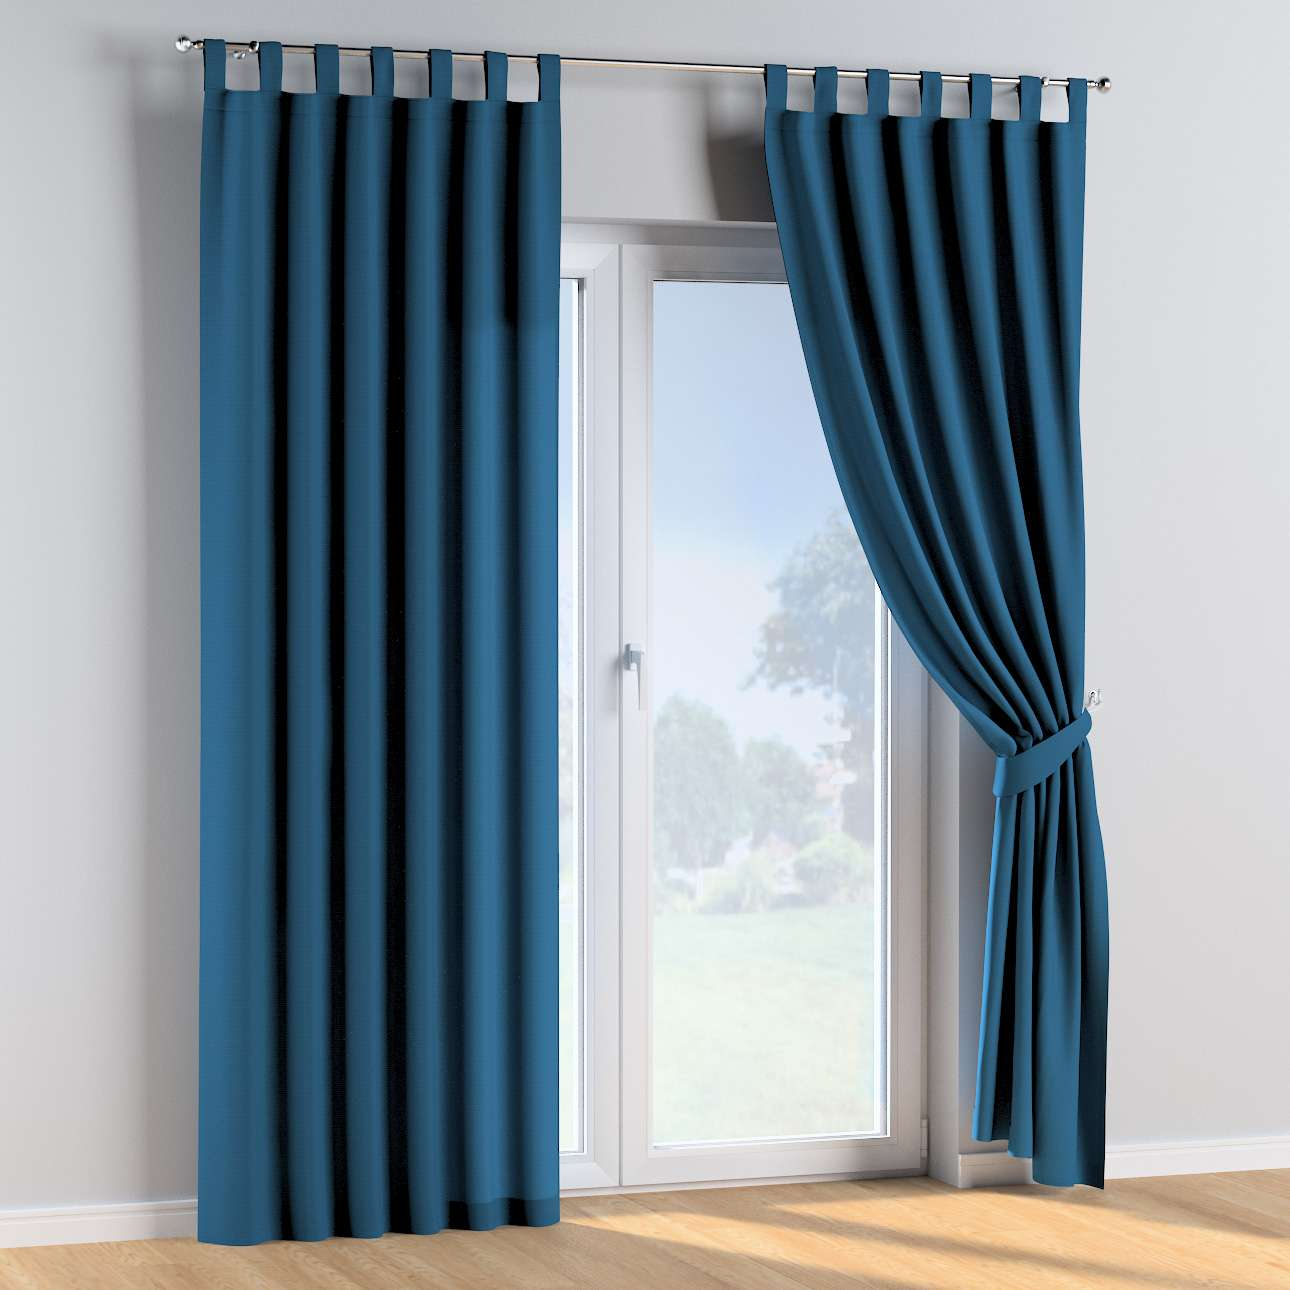 Tab top curtains in collection Cotton Story, fabric: 702-30